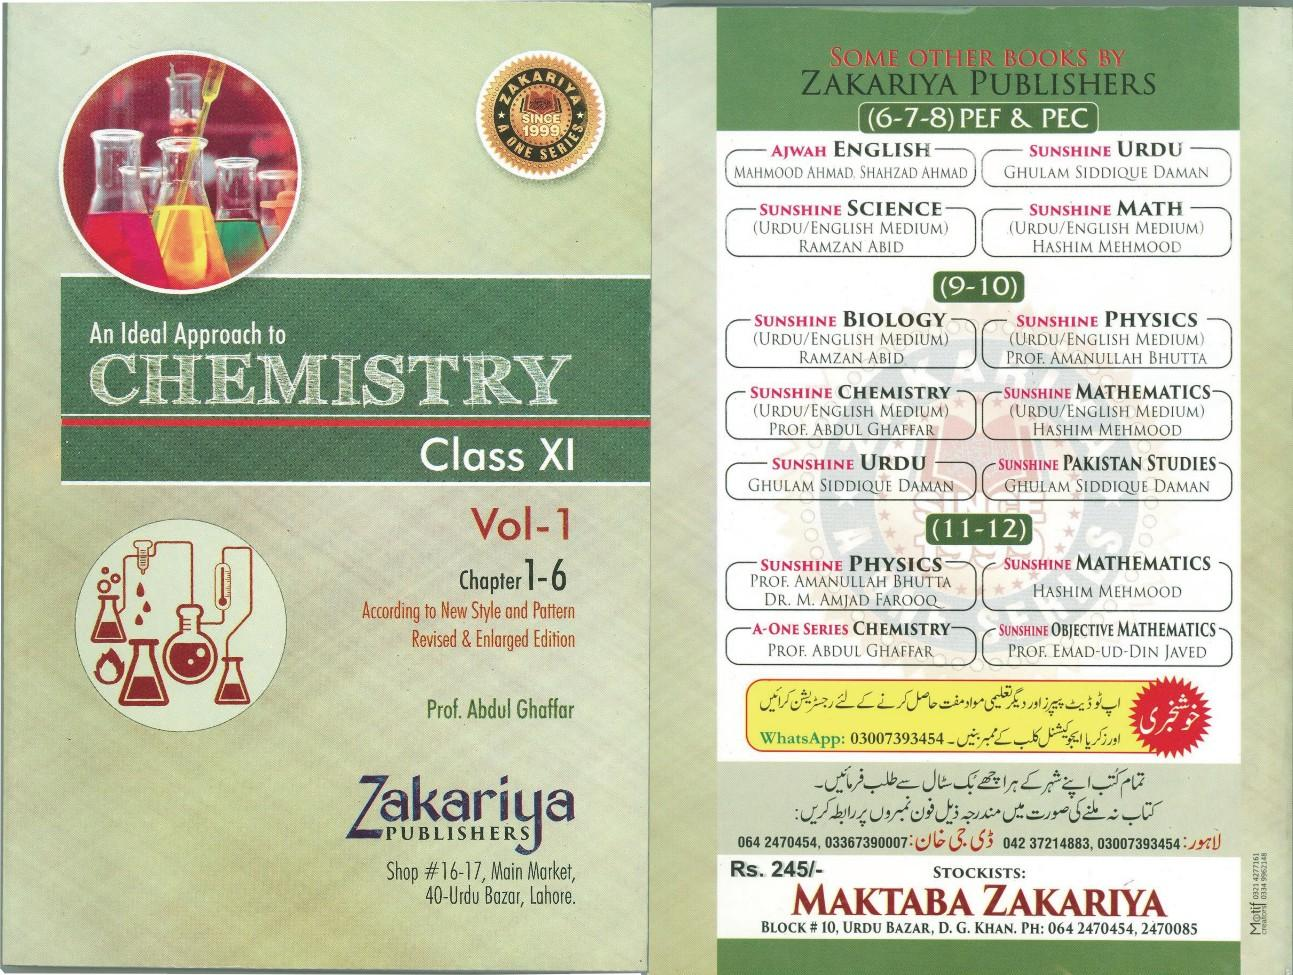 Chemistry Notes Class 1st Year (Vol-1) Chapter 1-6